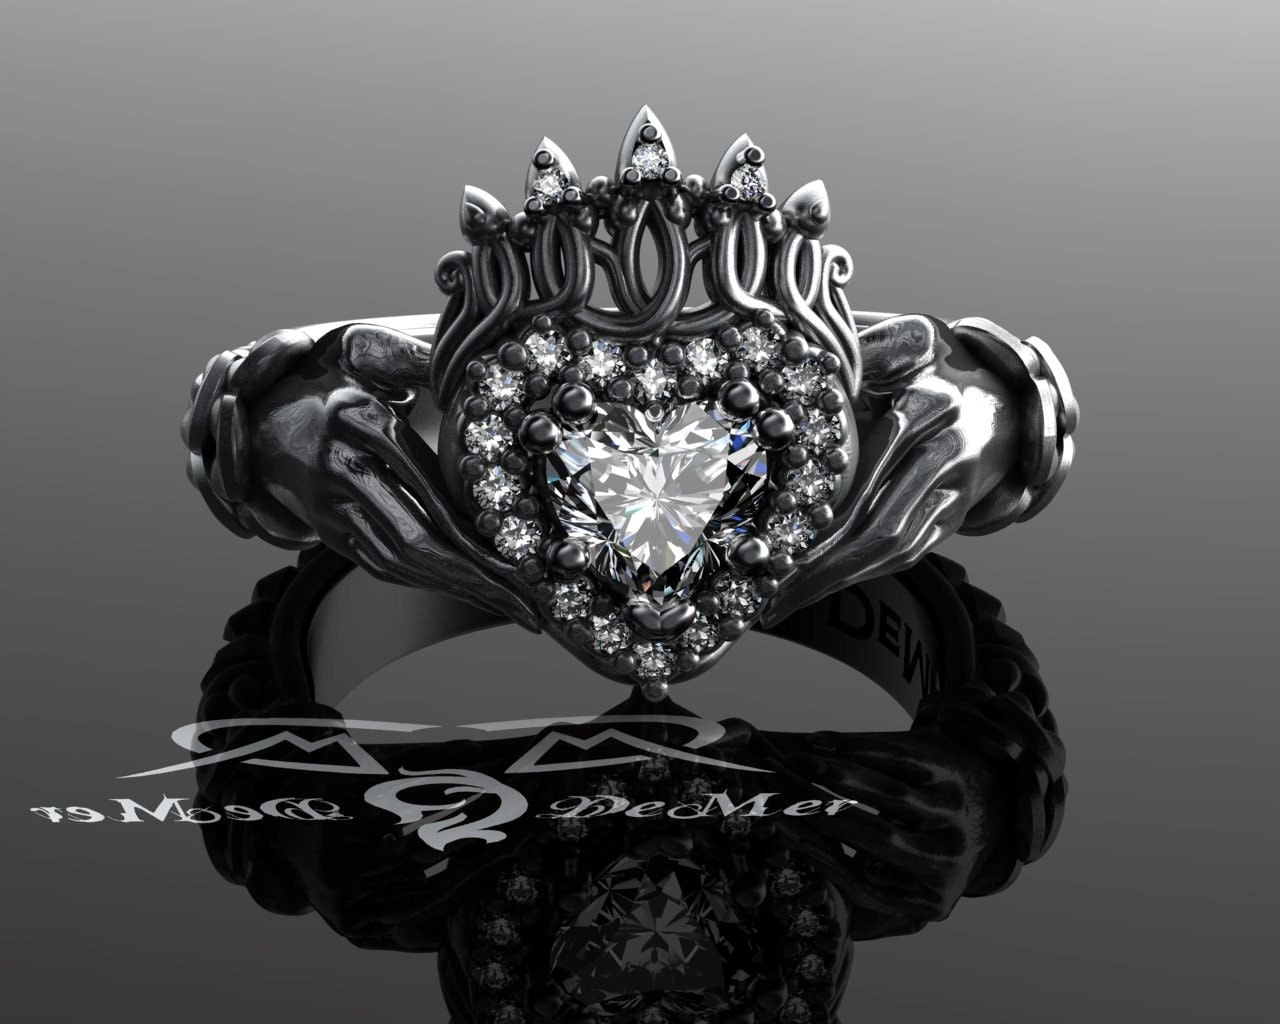 claddagh ring with celtic knot work weave in solid platinum. Black Bedroom Furniture Sets. Home Design Ideas